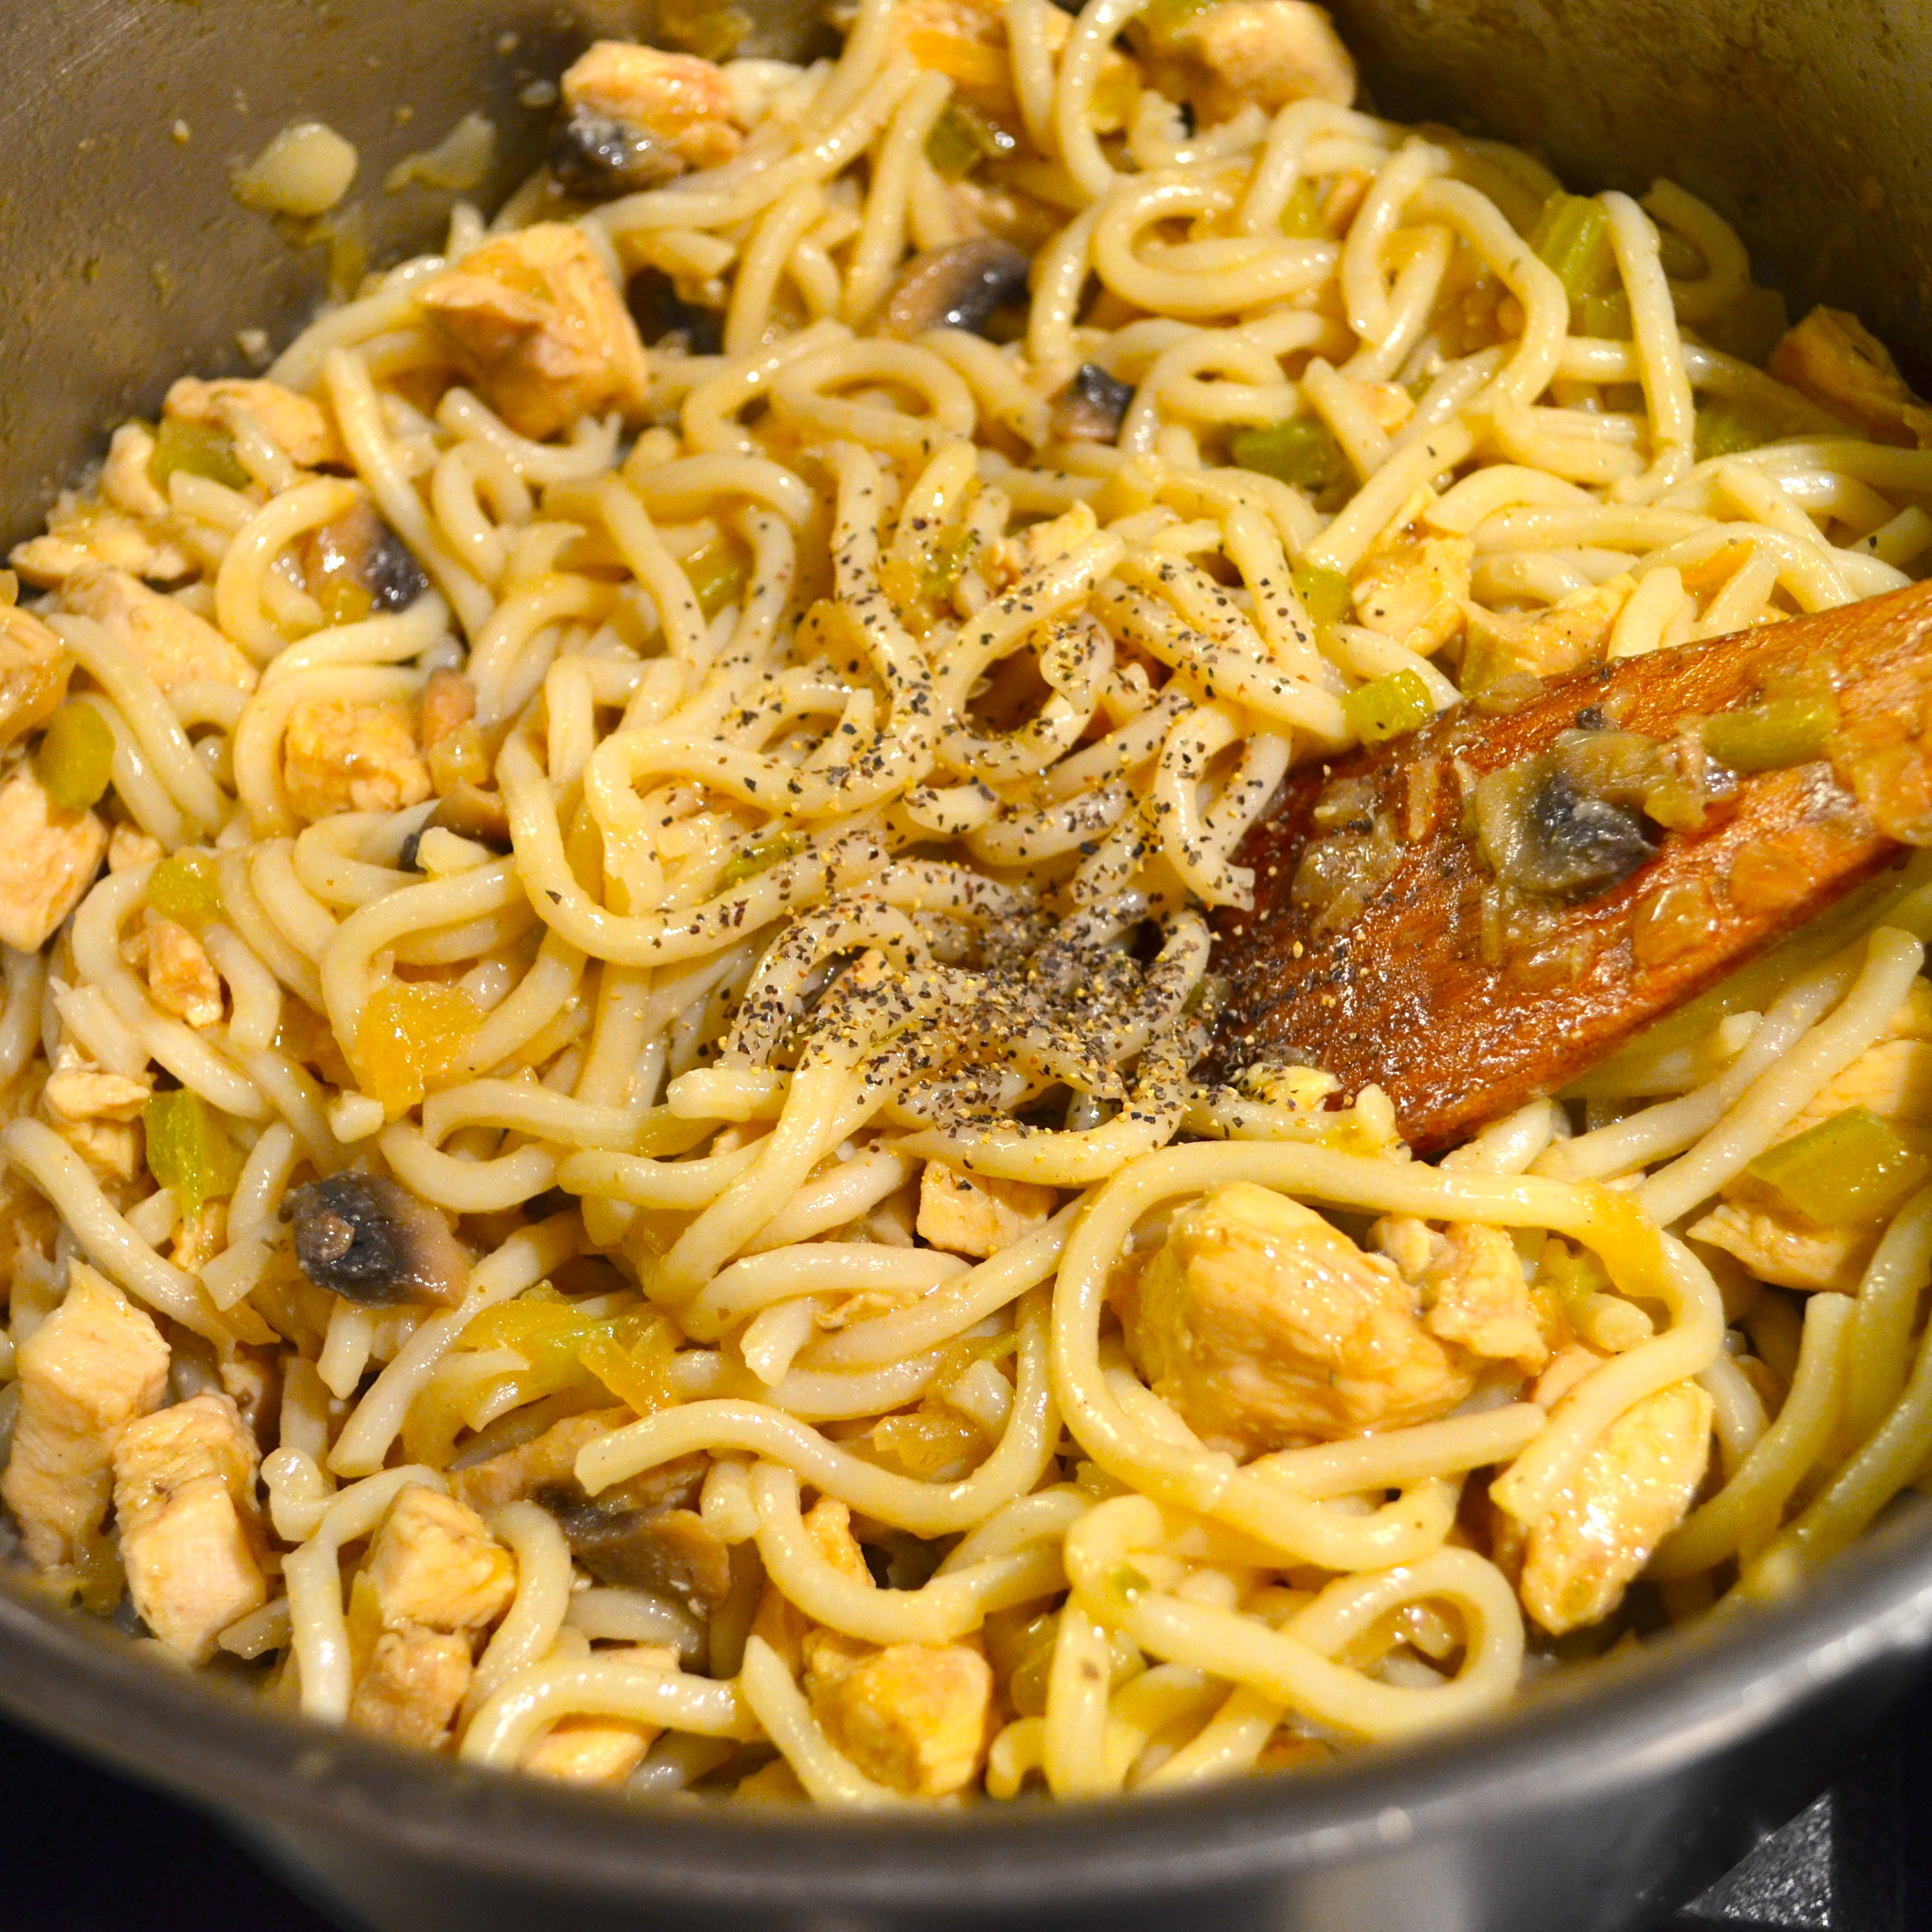 Recipes Chicken Udon Noodles: UDON NOODLES WITH CURRIED CHICKEN